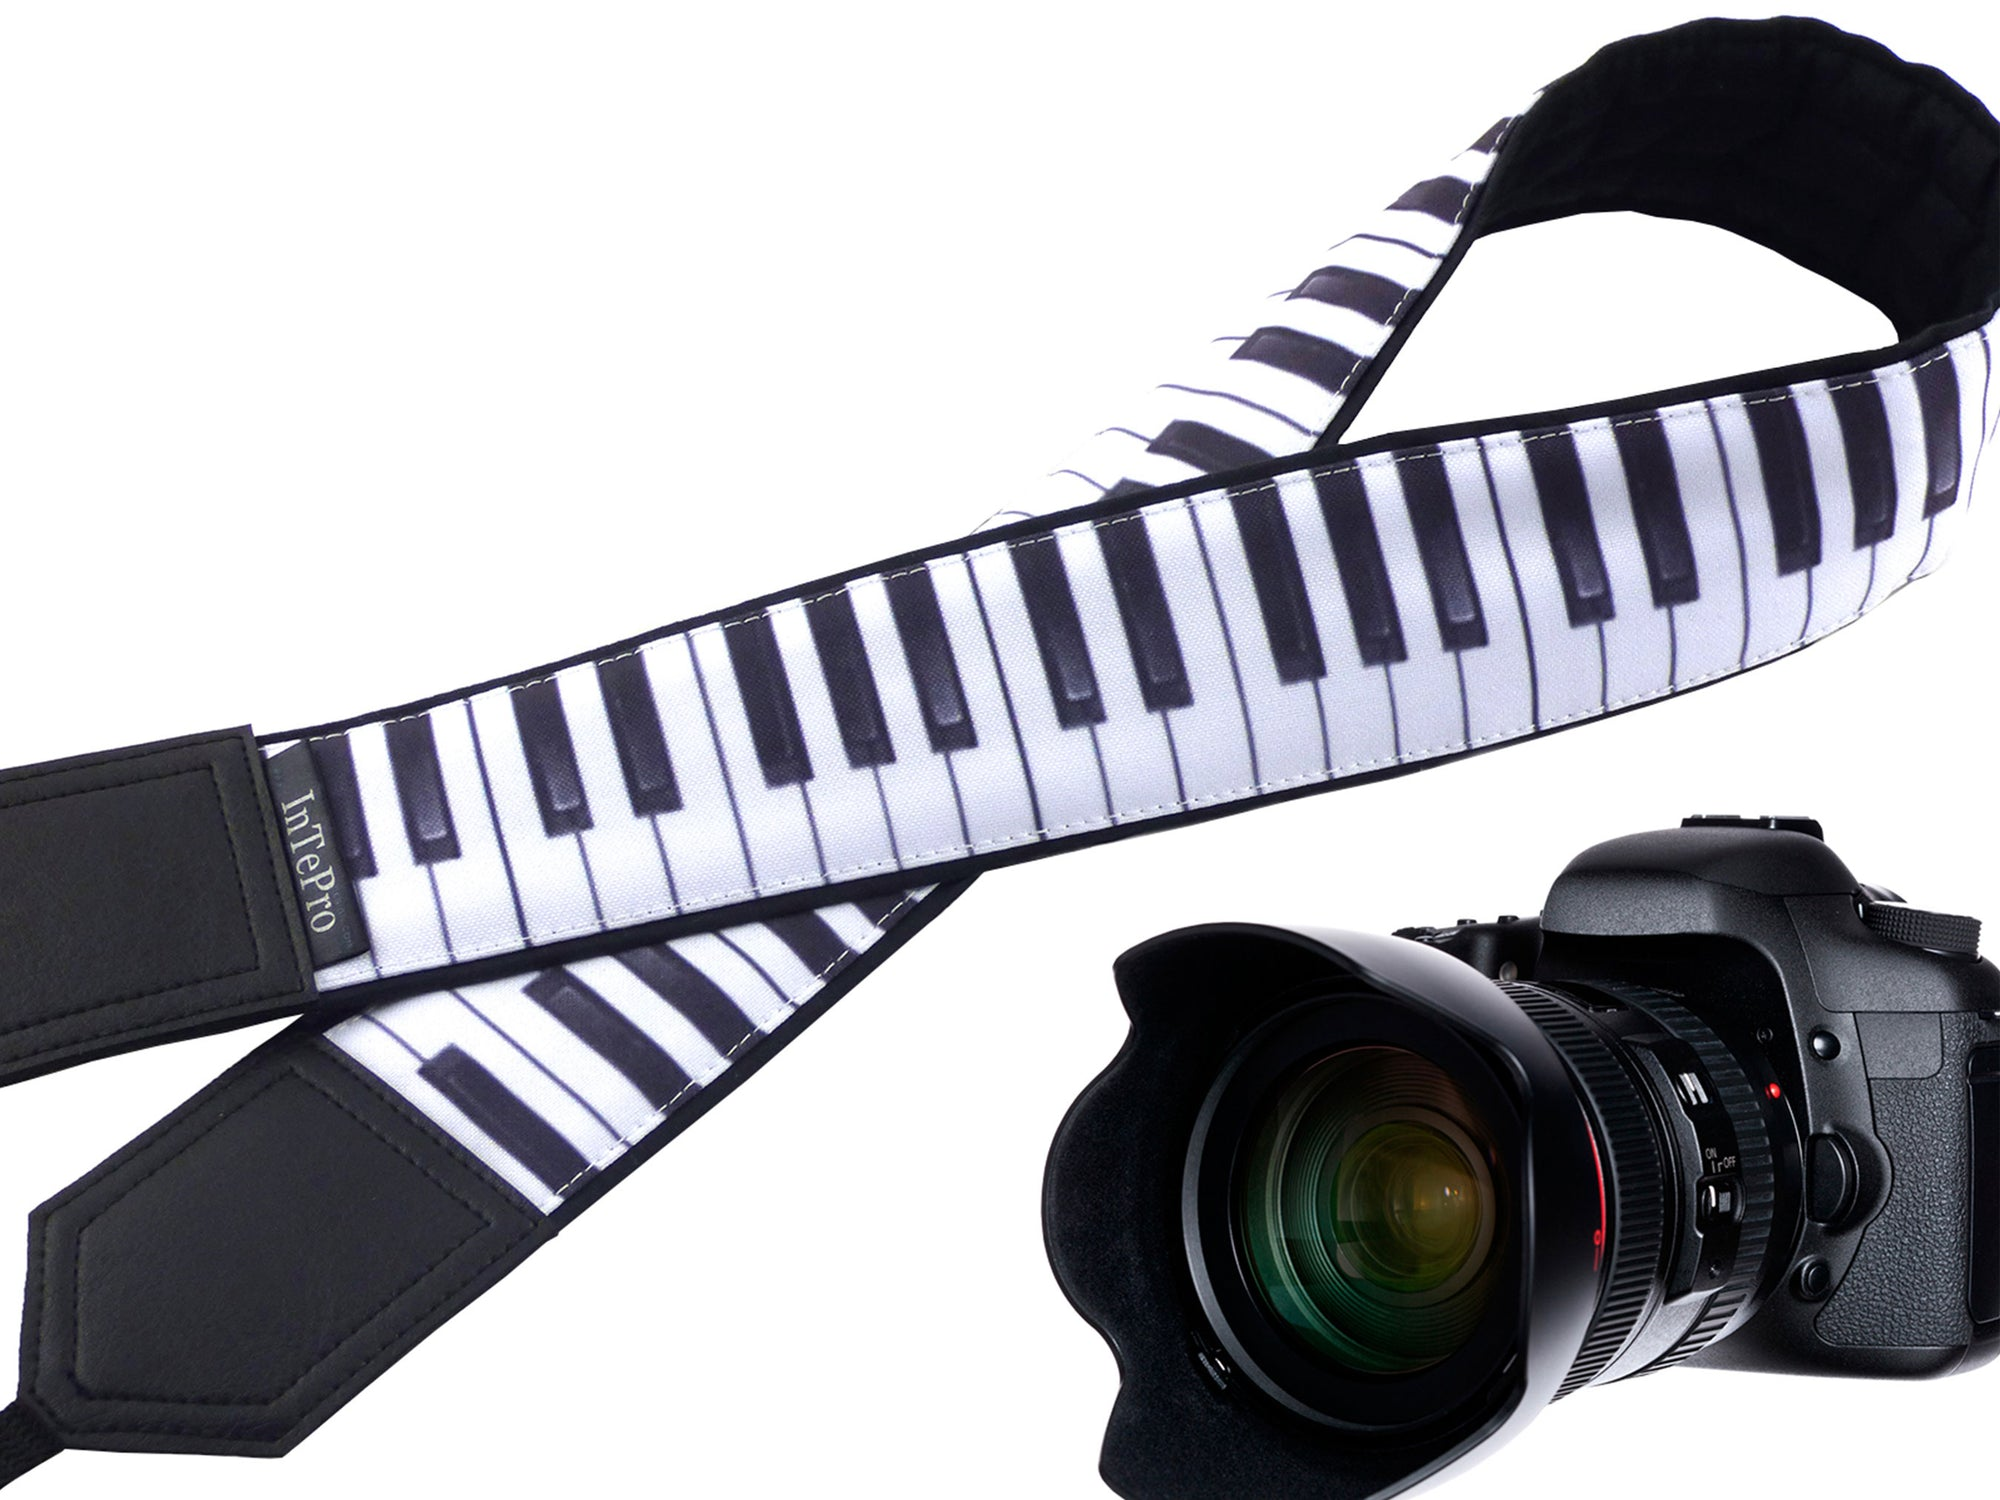 Personalized camera strap with embroidery. Camera strap DSLR with piano keys. Gift for musician. Black and white music keyboard design.